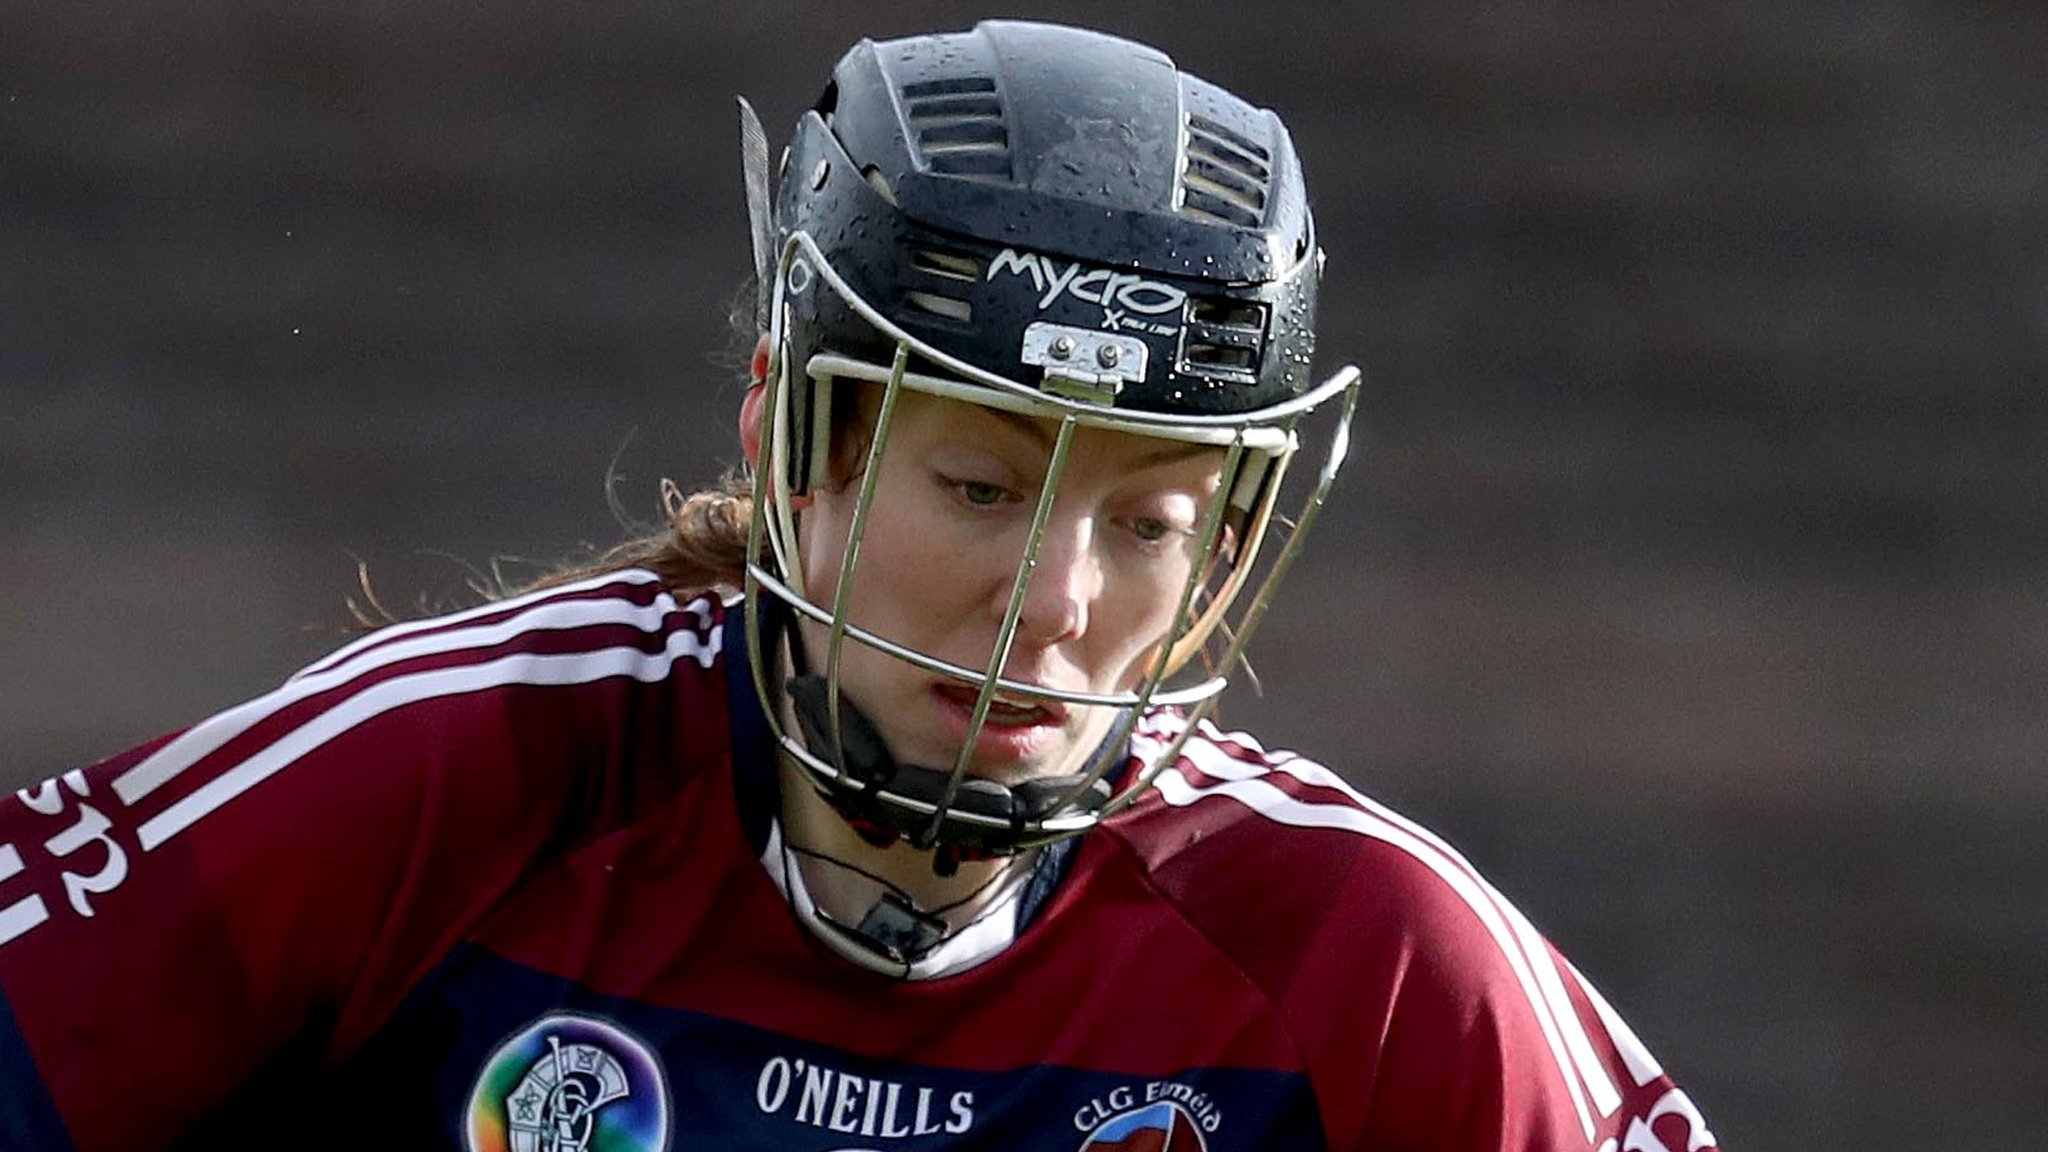 Ulster Camogie: Slaughtneil defeat Loughgiel 0-11 to 0-8 to retain their provincial title